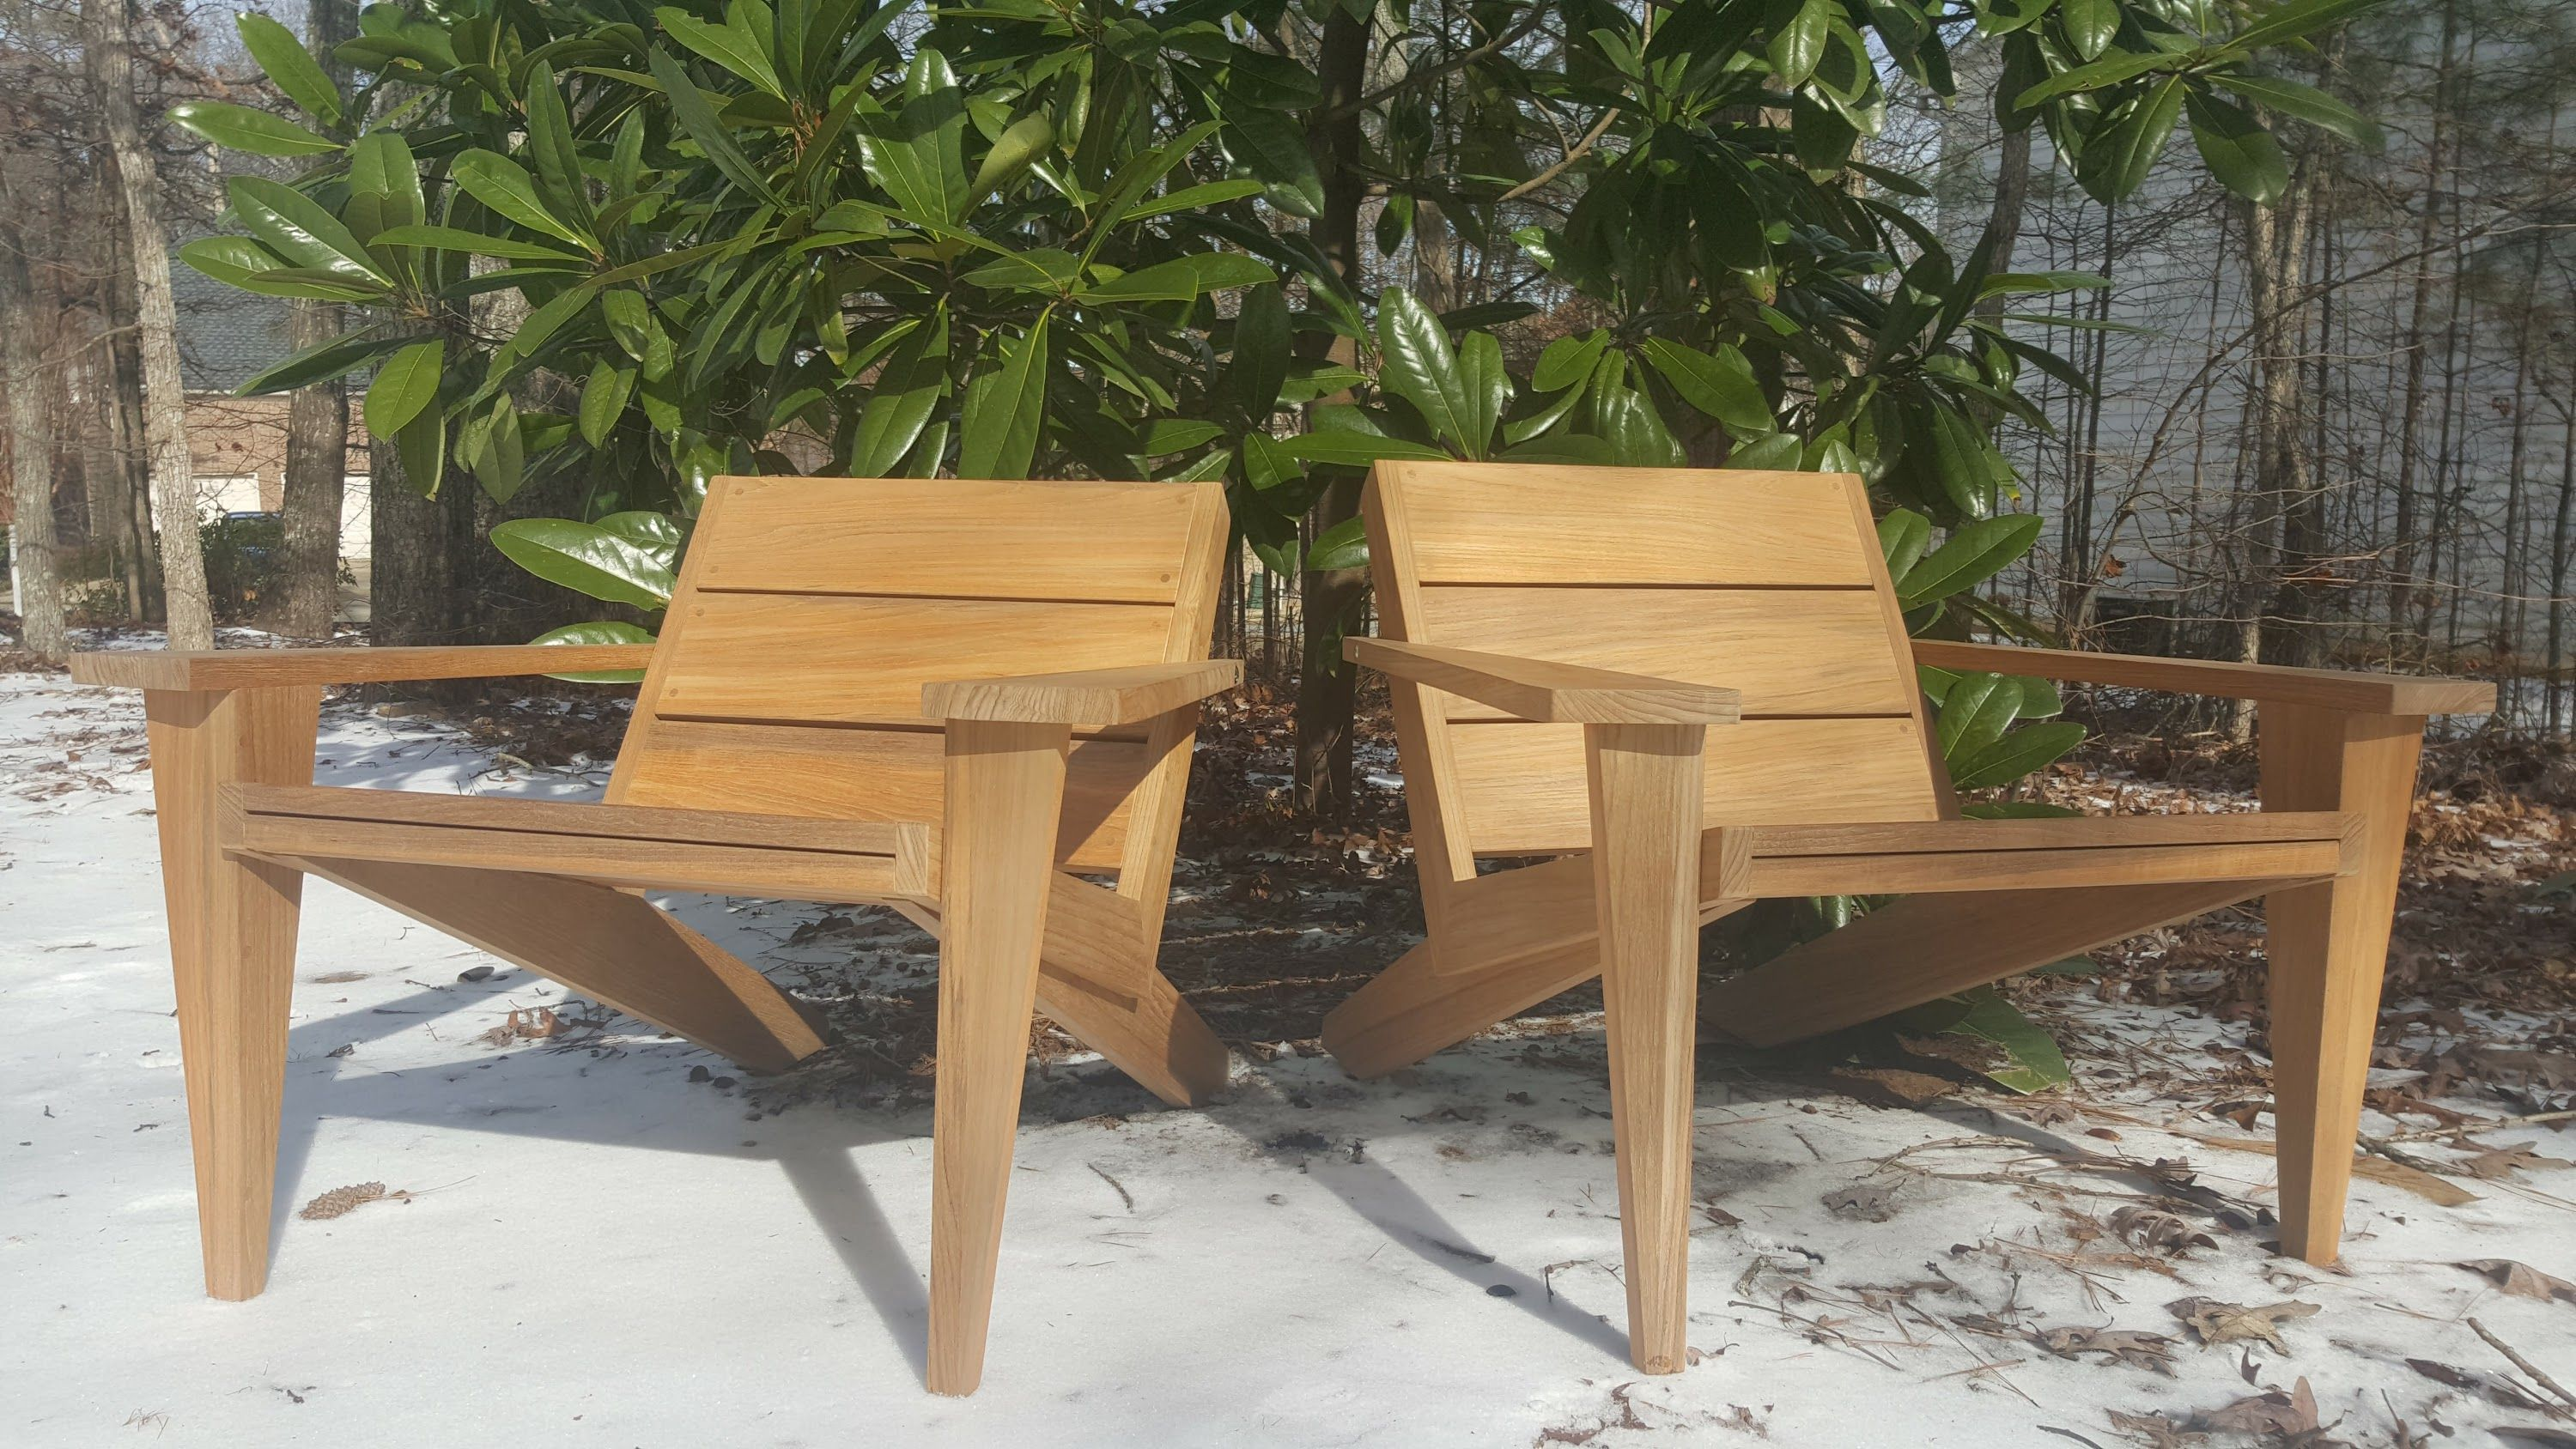 Awe Inspiring Hand Crafted Modern Teak Adirondack Outdoor Lounge Chair Short Links Chair Design For Home Short Linksinfo